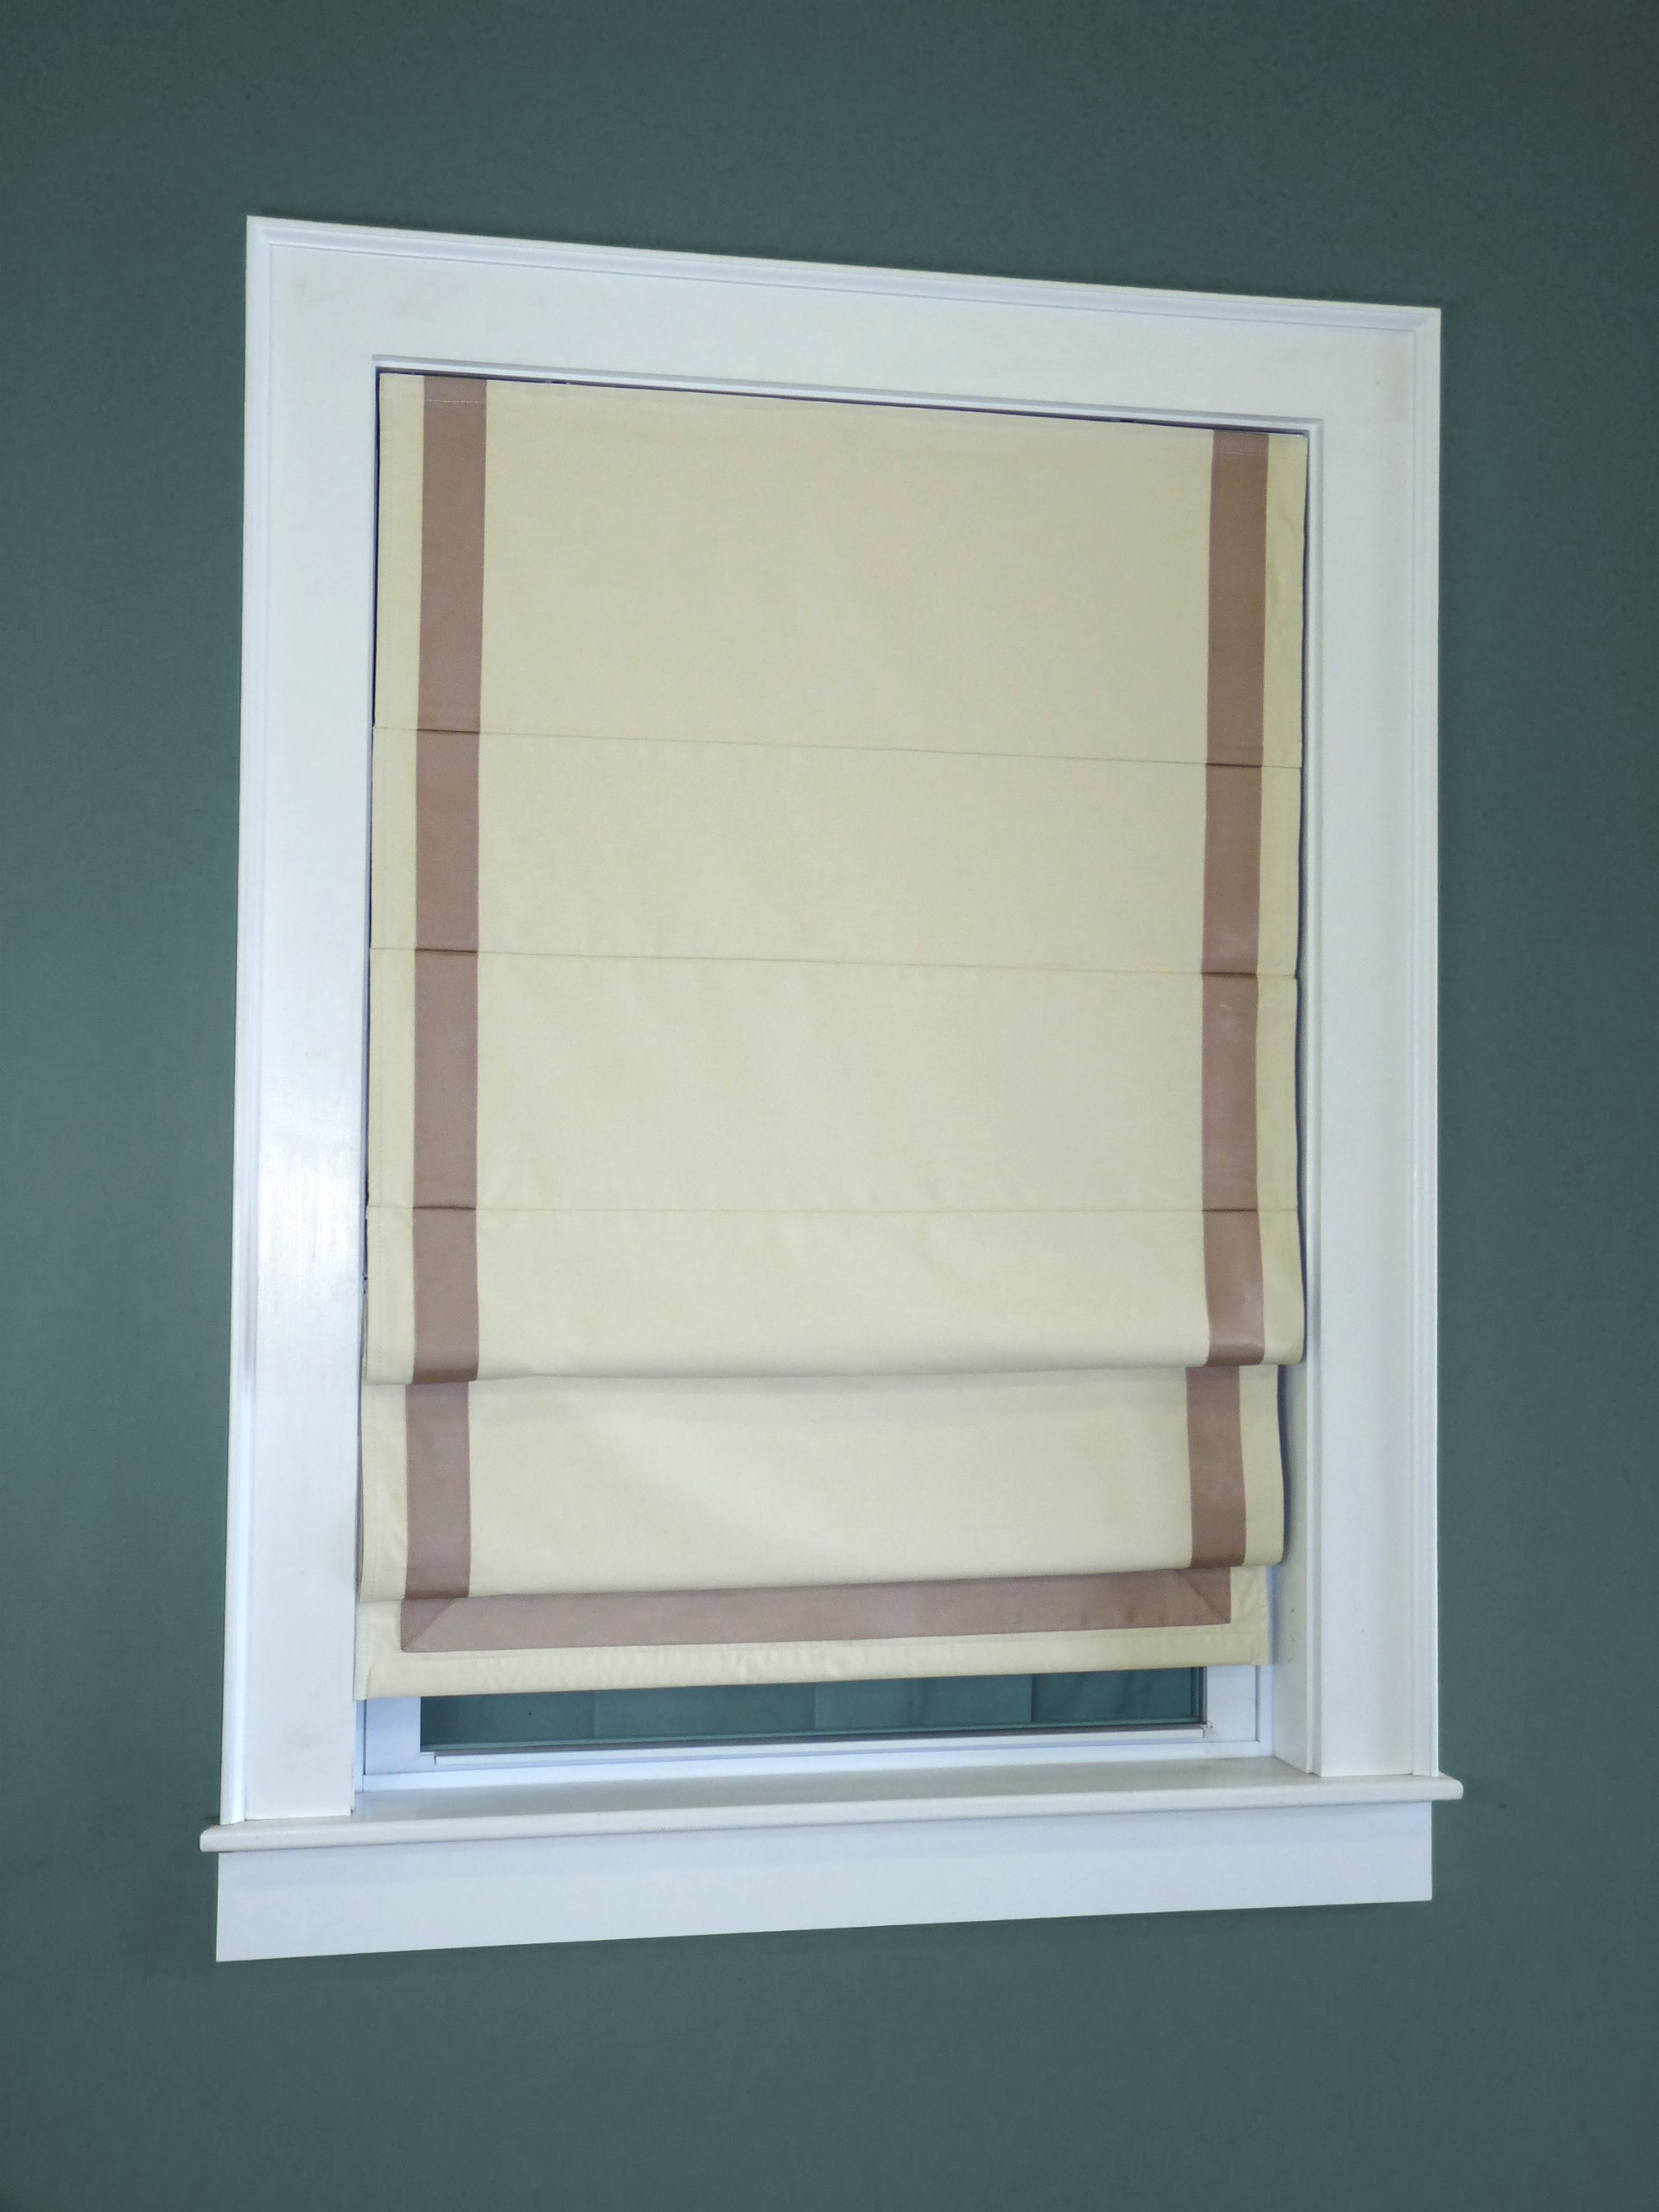 Green Mountain Vista Thermal Blackout Cordless Roman Shade with Ribbon Border, 30 by 63-Inch, Taupe by Green Mountain Vista